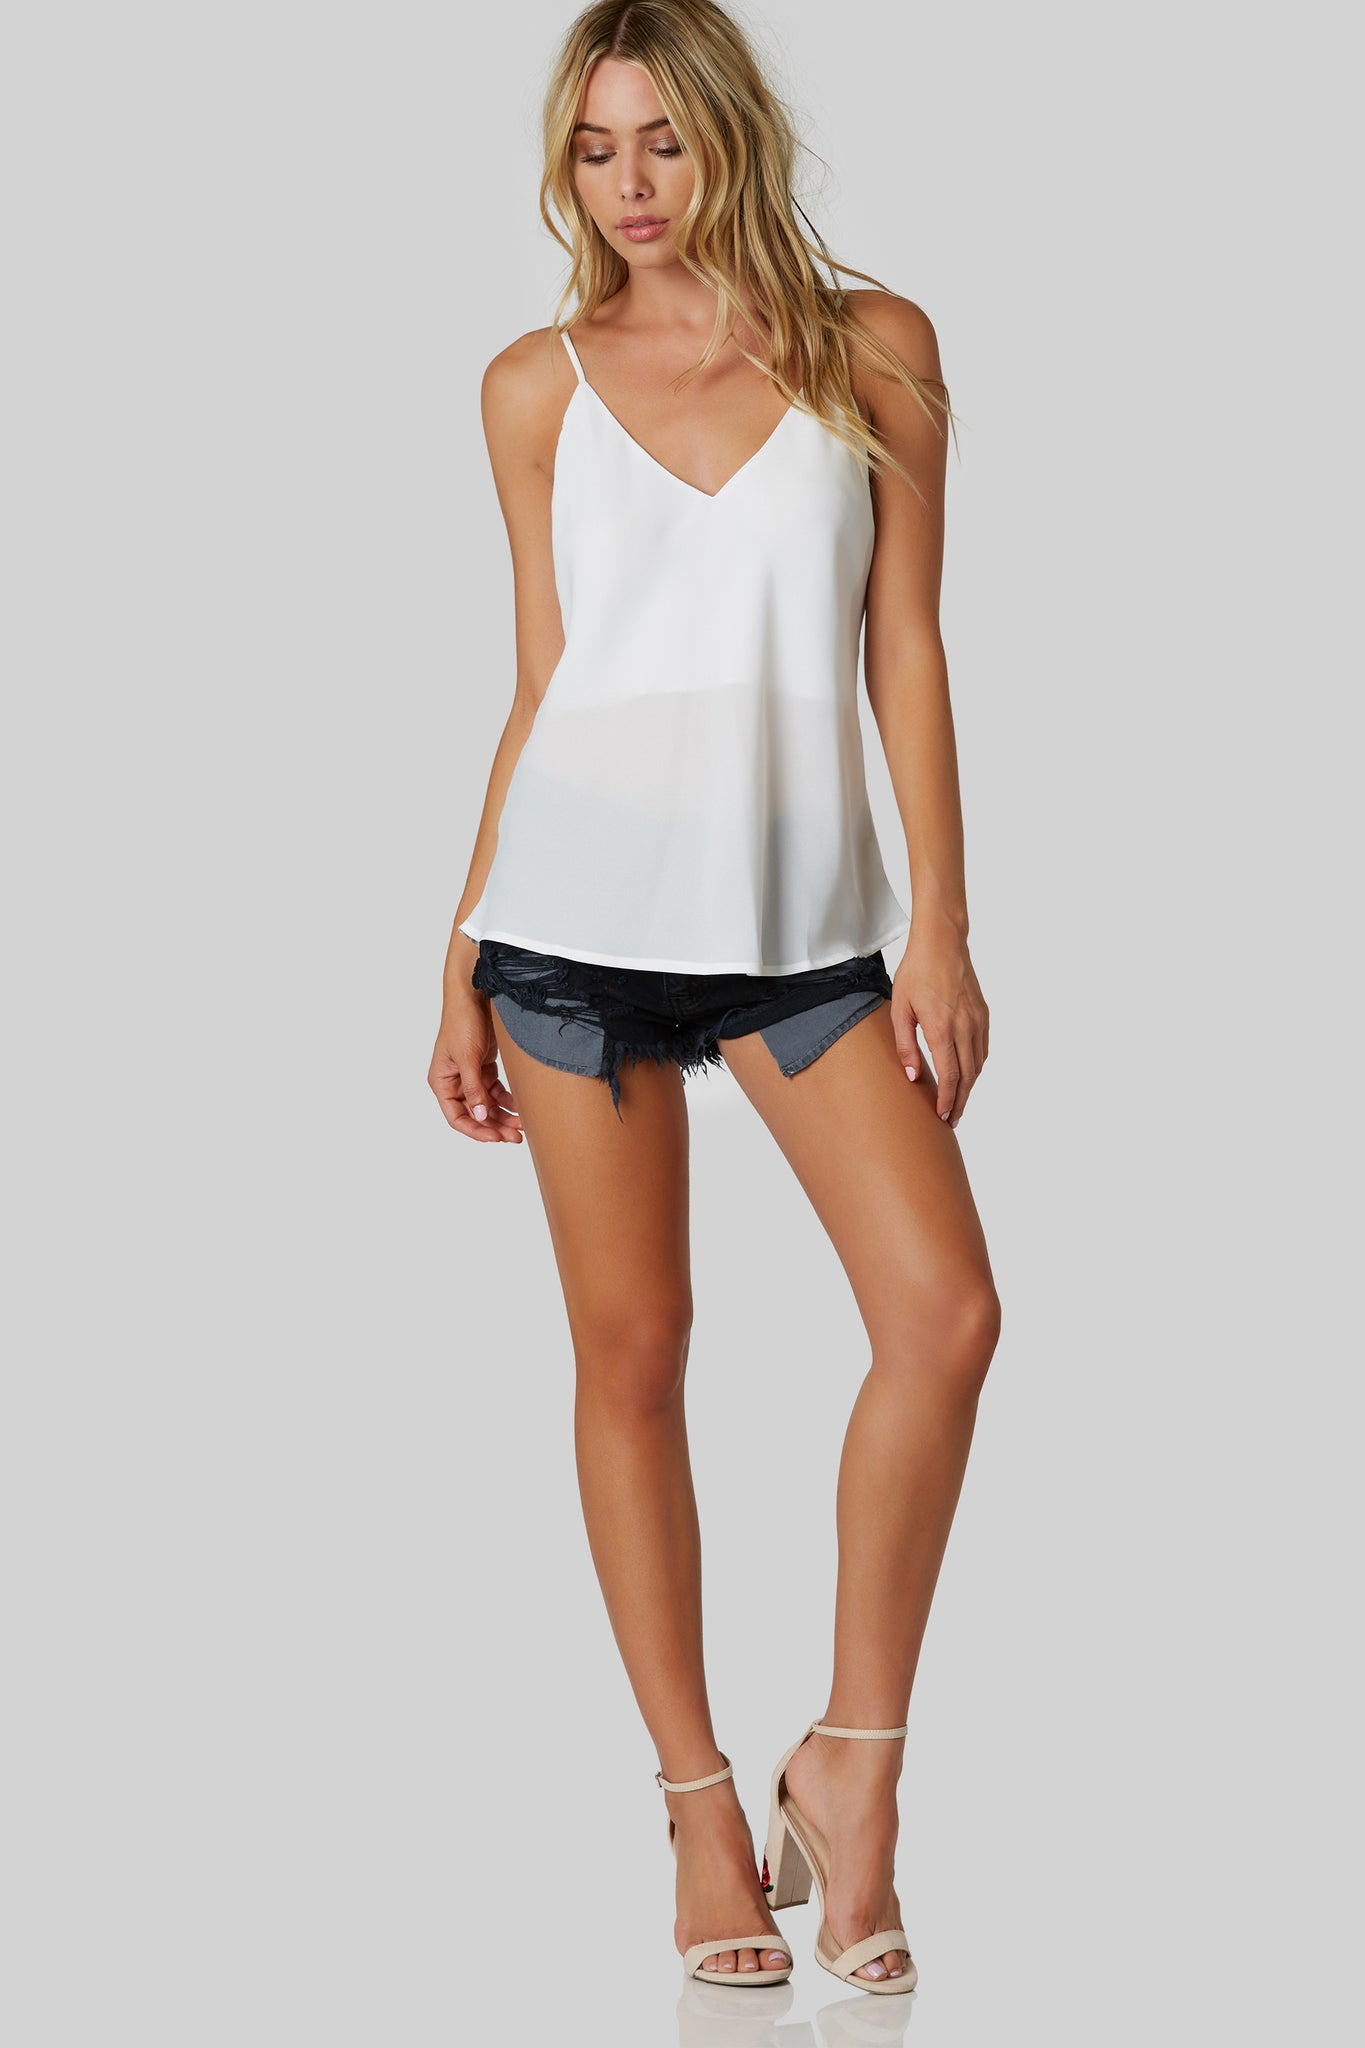 Basic V-neck cami with criss-cross design in back. Oversized fit with slightly curved hem.